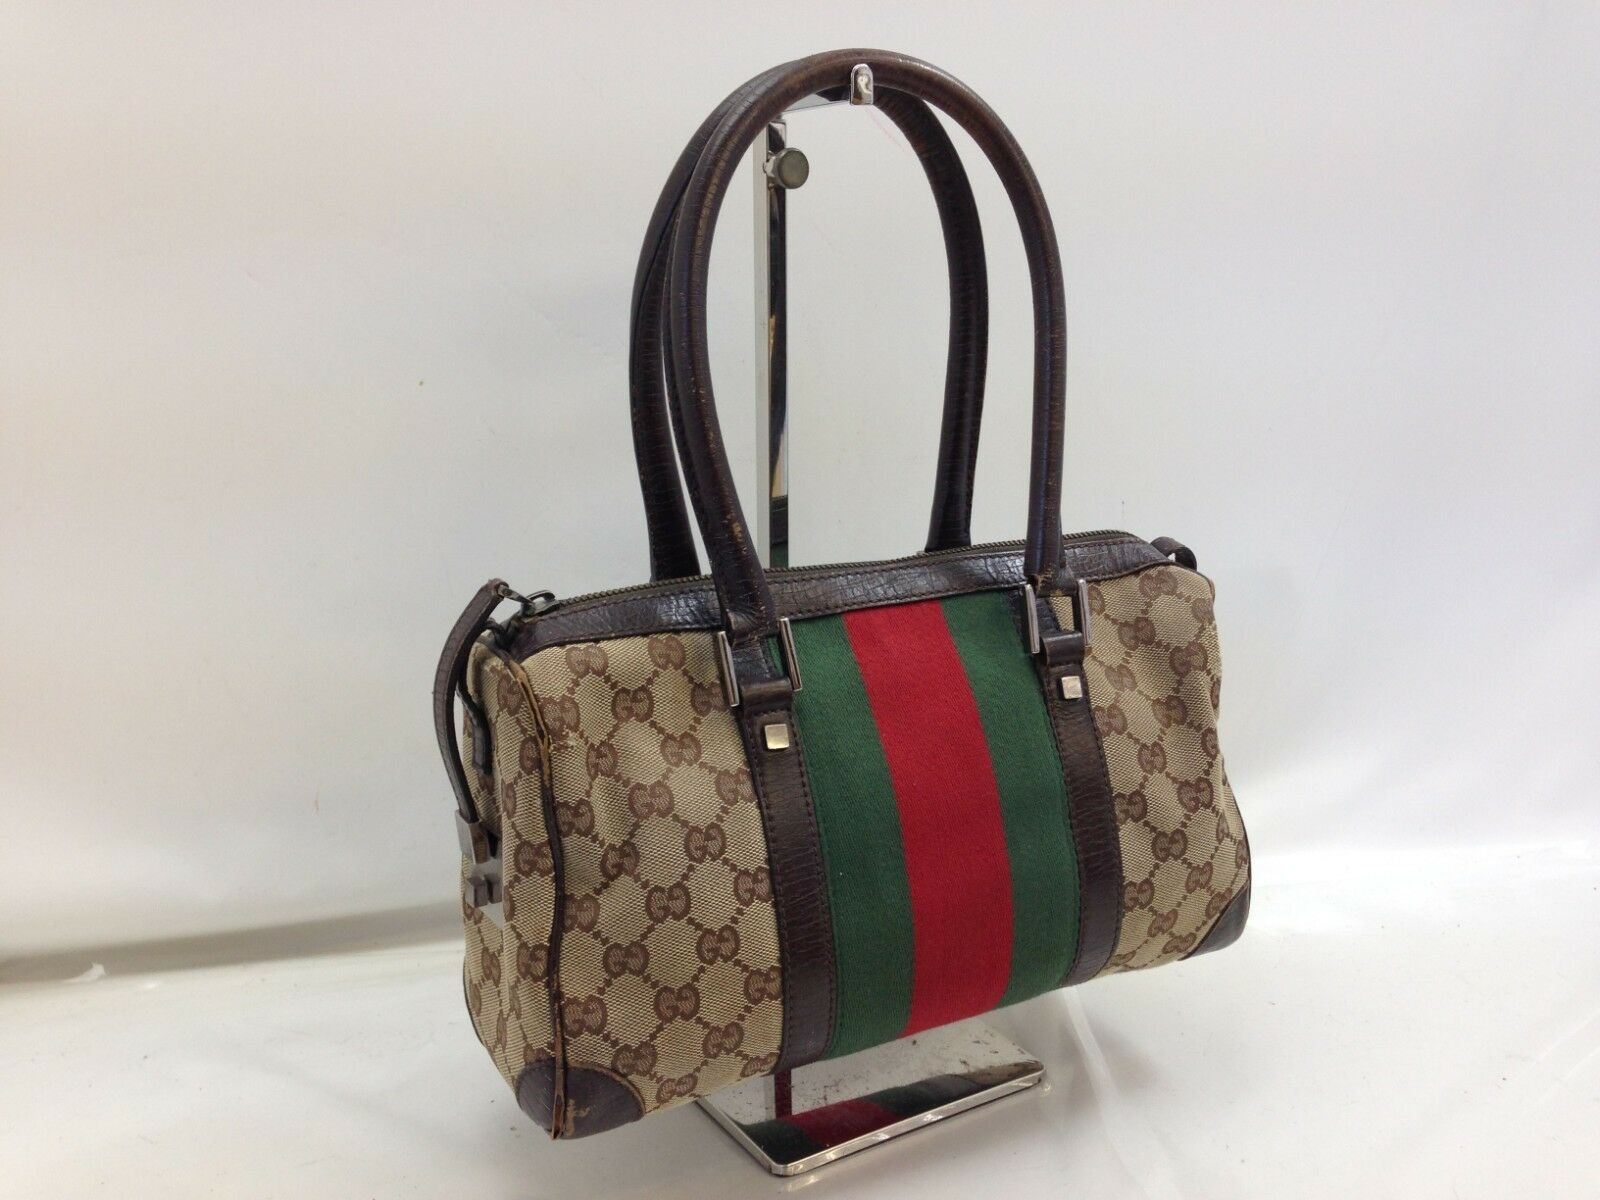 303f147e066963 #FORSALE Authentic Gucci GG Pattern Boston Hand Bag Brown Vintage 8L210260Y  - $28